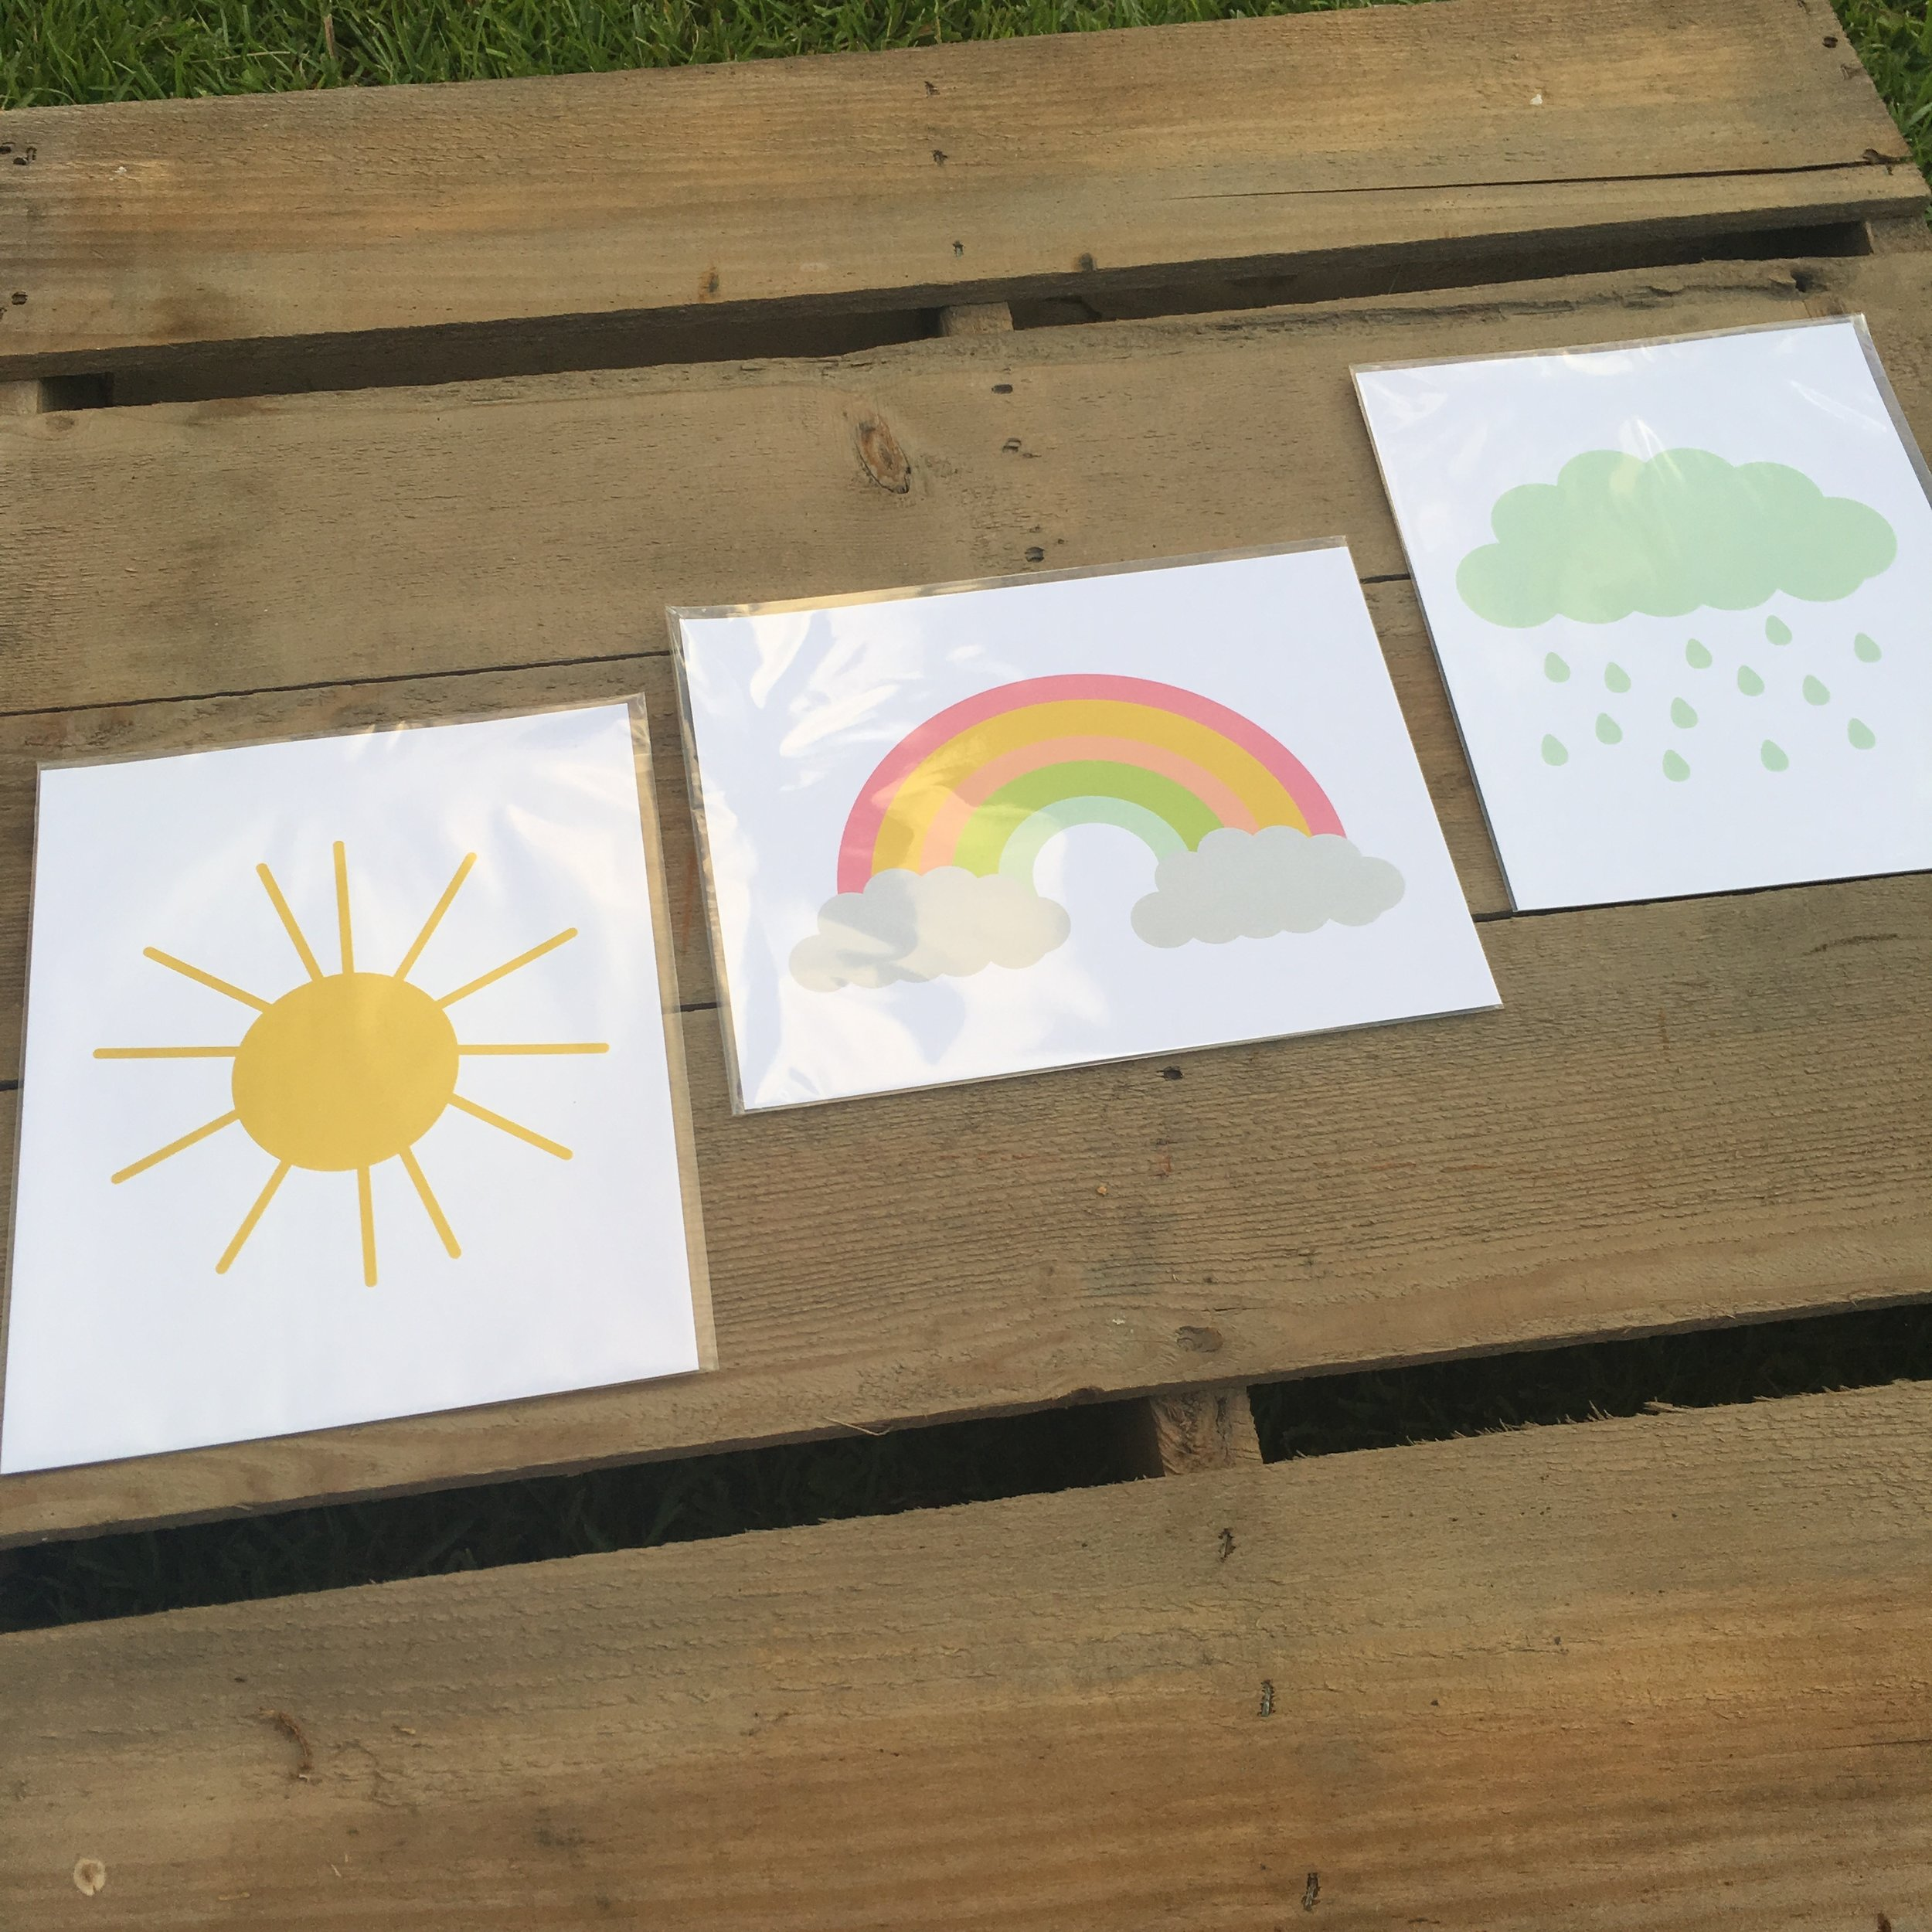 8x10 Prints of Sun, Cloud, and Rainbow